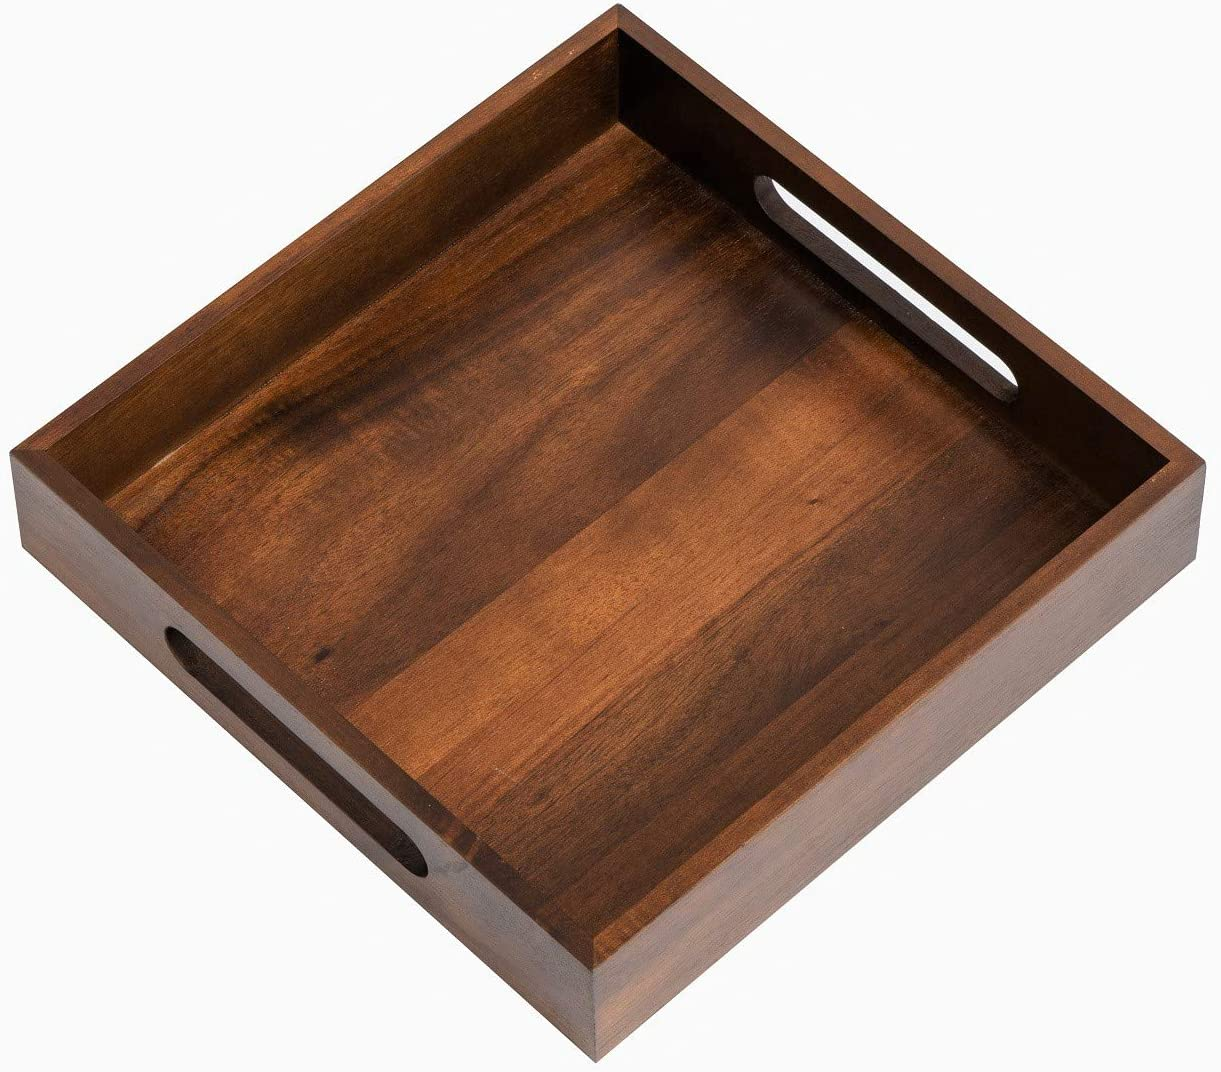 KEVLANG Rustic Wooden Serving Tray with Handles-100% Acacia Wood with Natural Wooden Pattern-10x10 inch